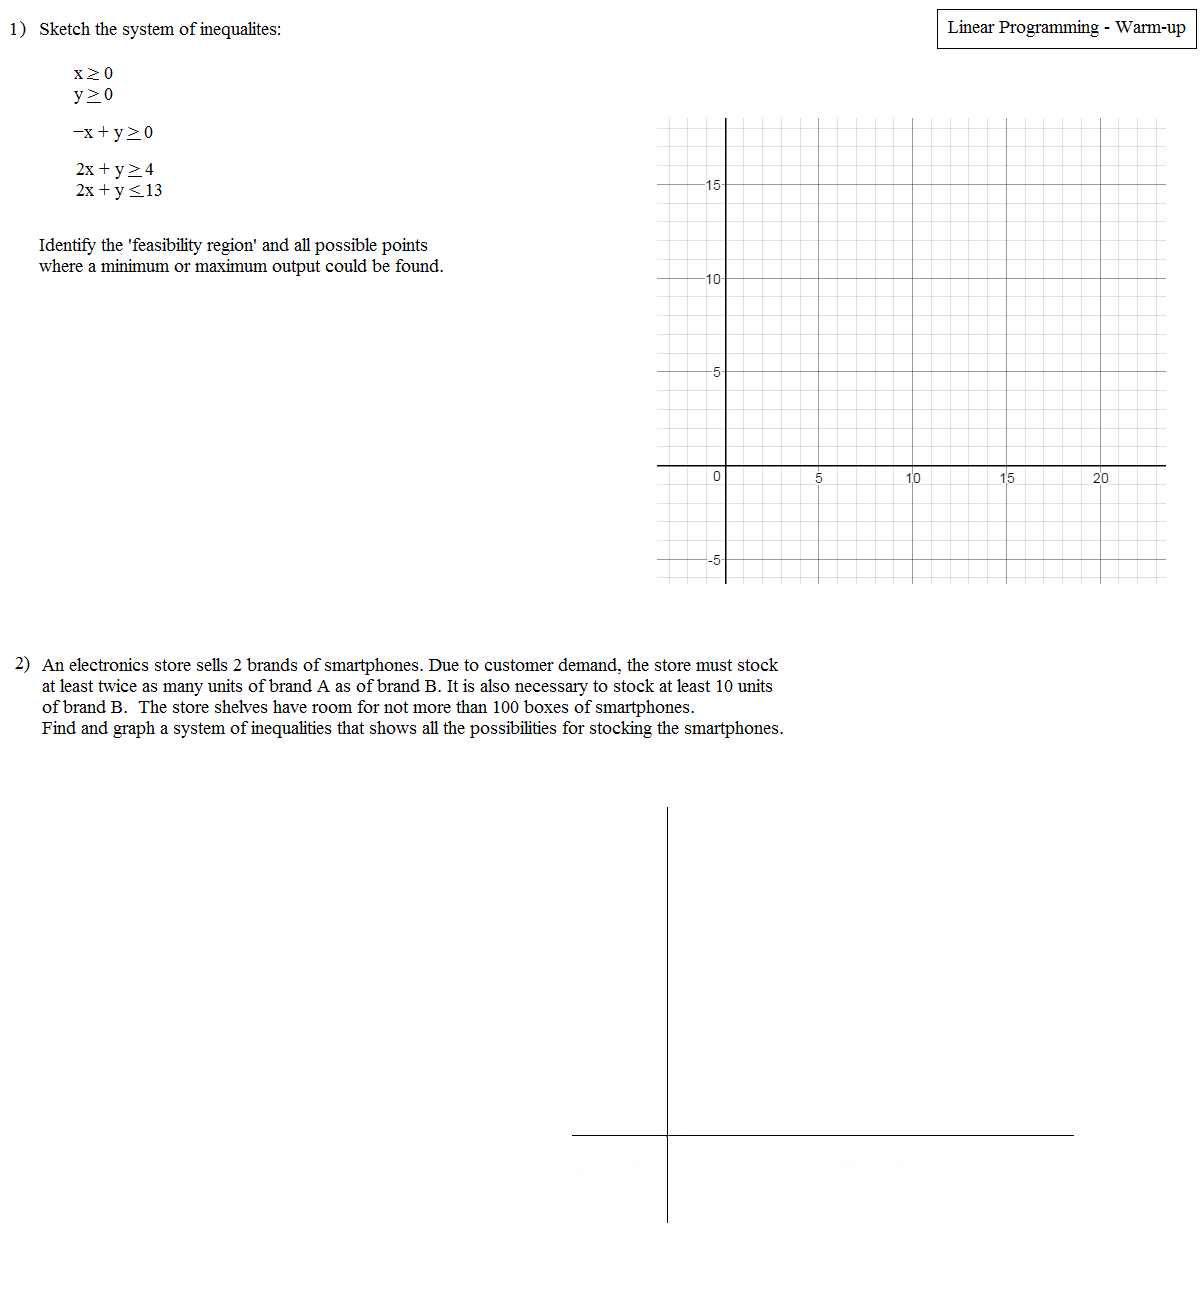 worksheet Linear Programming Worksheet linear programming worksheet abitlikethis warm up 1